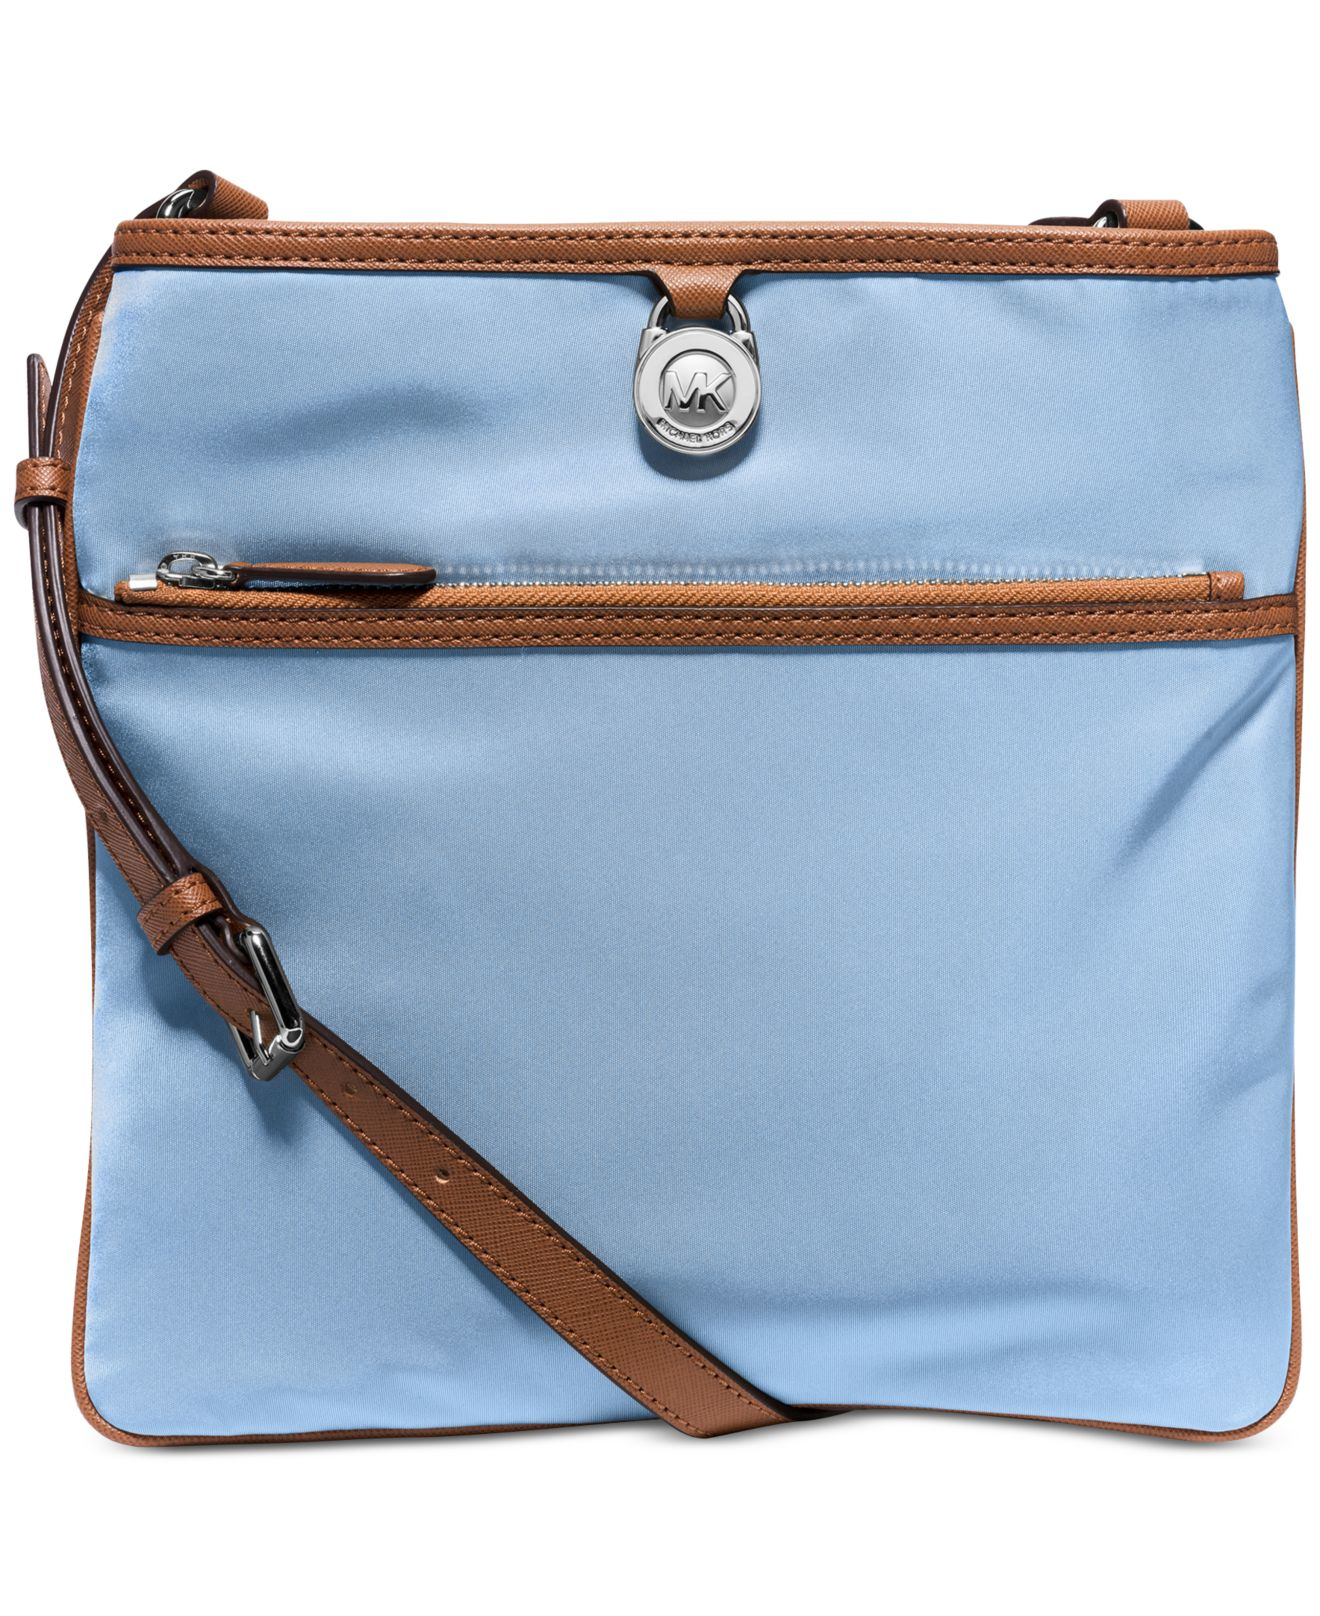 b1dc6ad4306dd6 ... good lyst michael kors michael kempton large pocket crossbody in blue  174b1 ae153